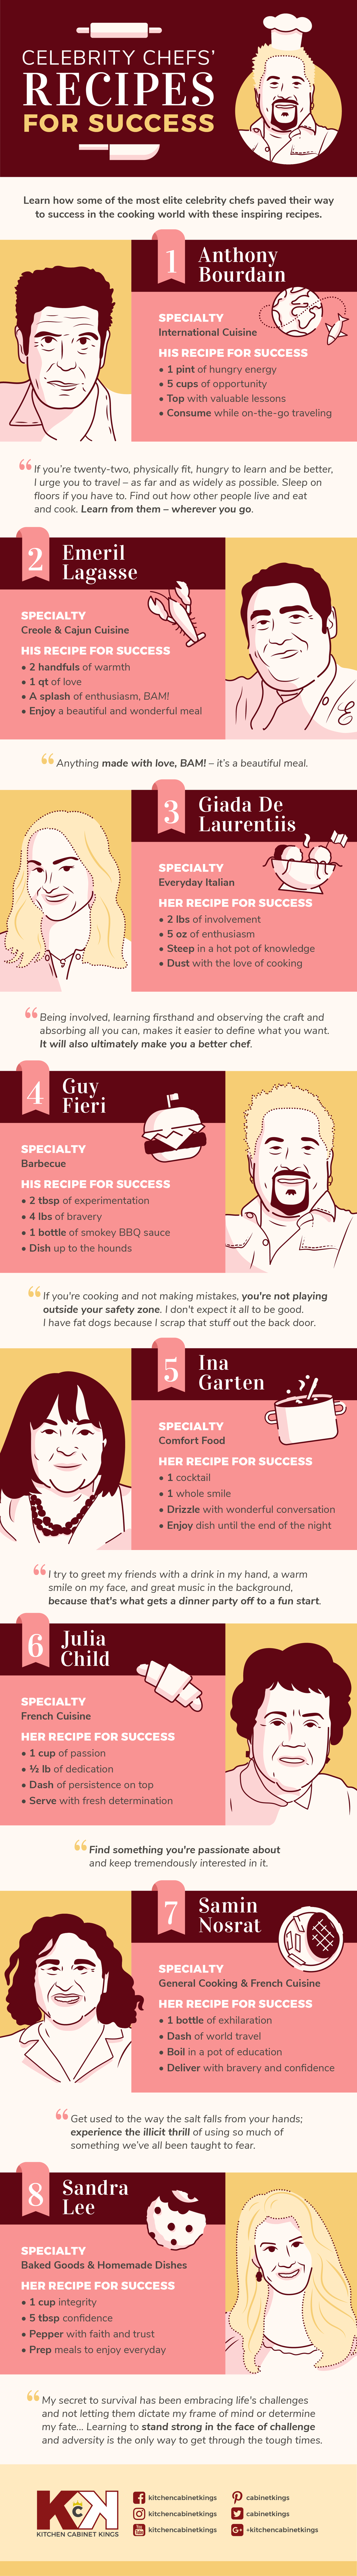 Recipes for success infographic